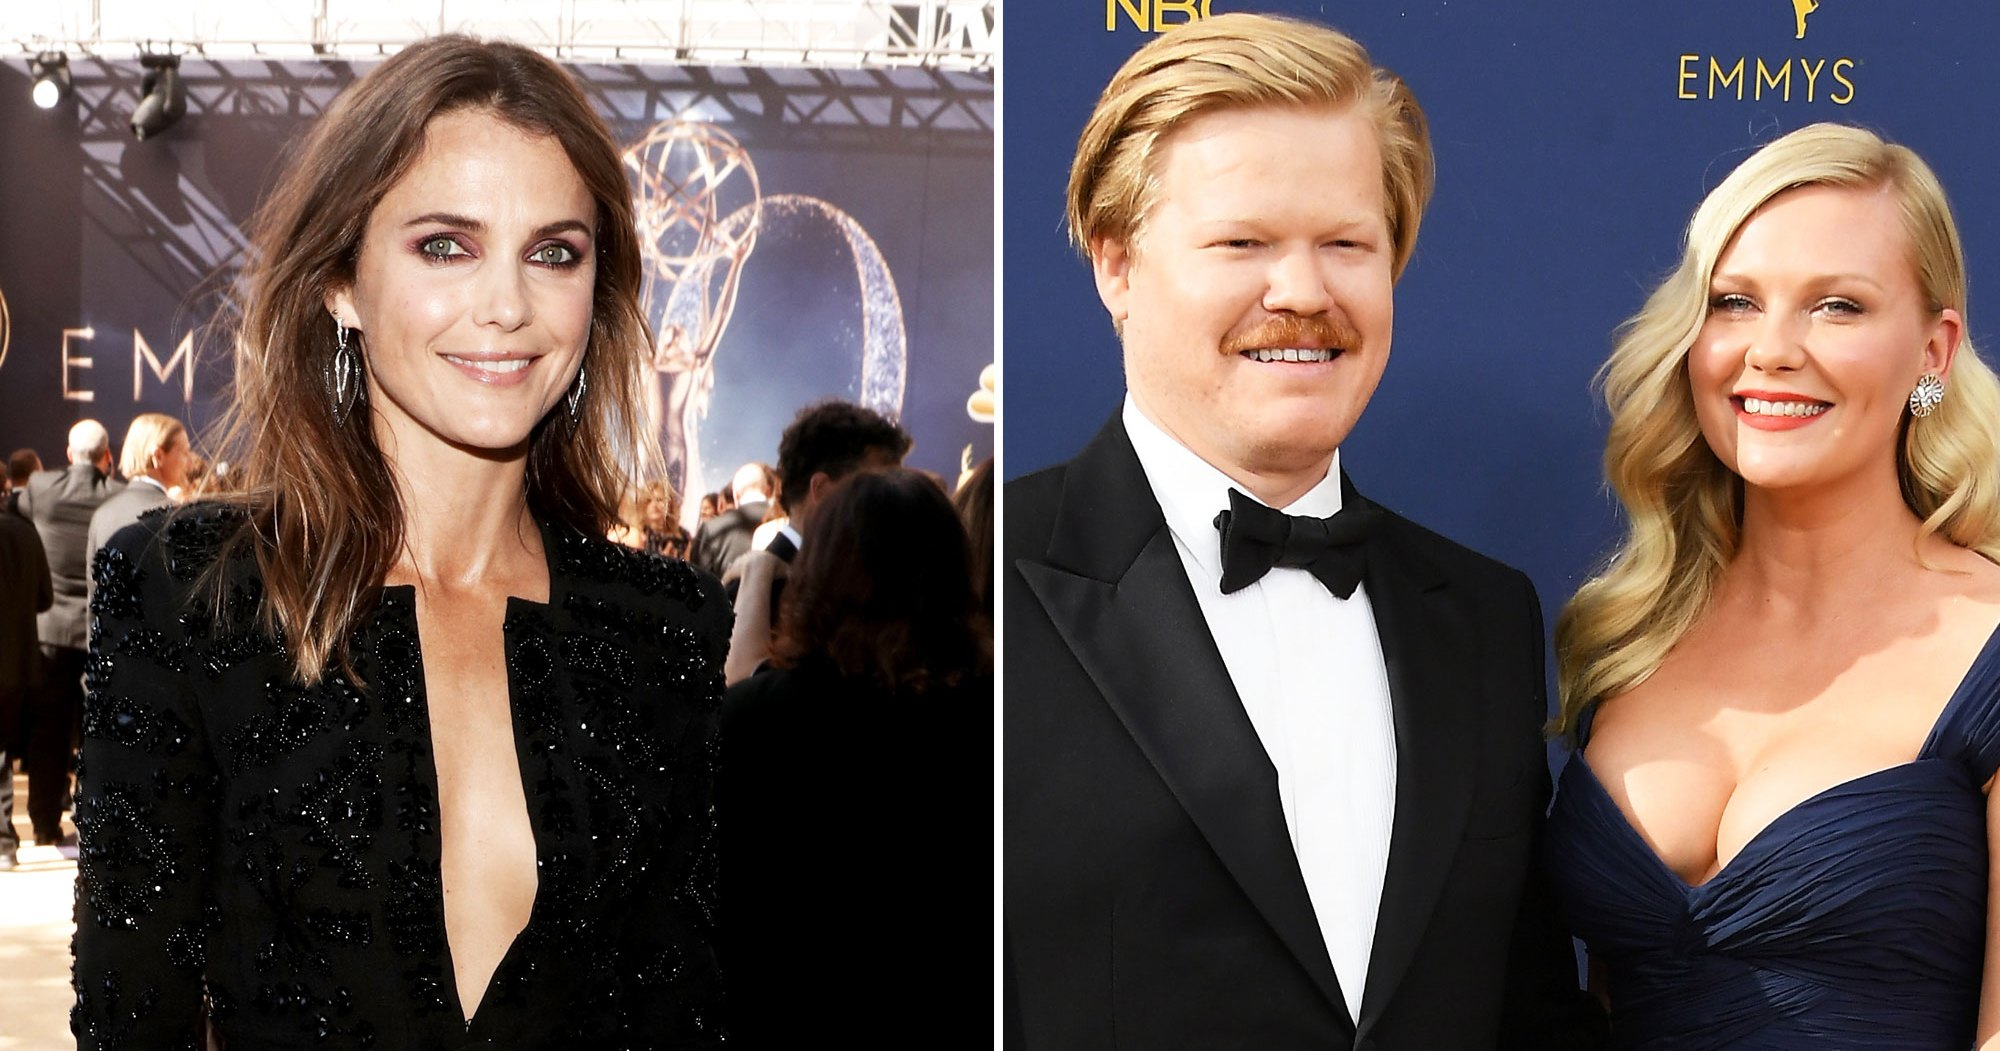 Keri Russell Shares a Bit of Wisdom With New Parents Kirsten Dunst and Jesse Plemons at the Emmy Awards